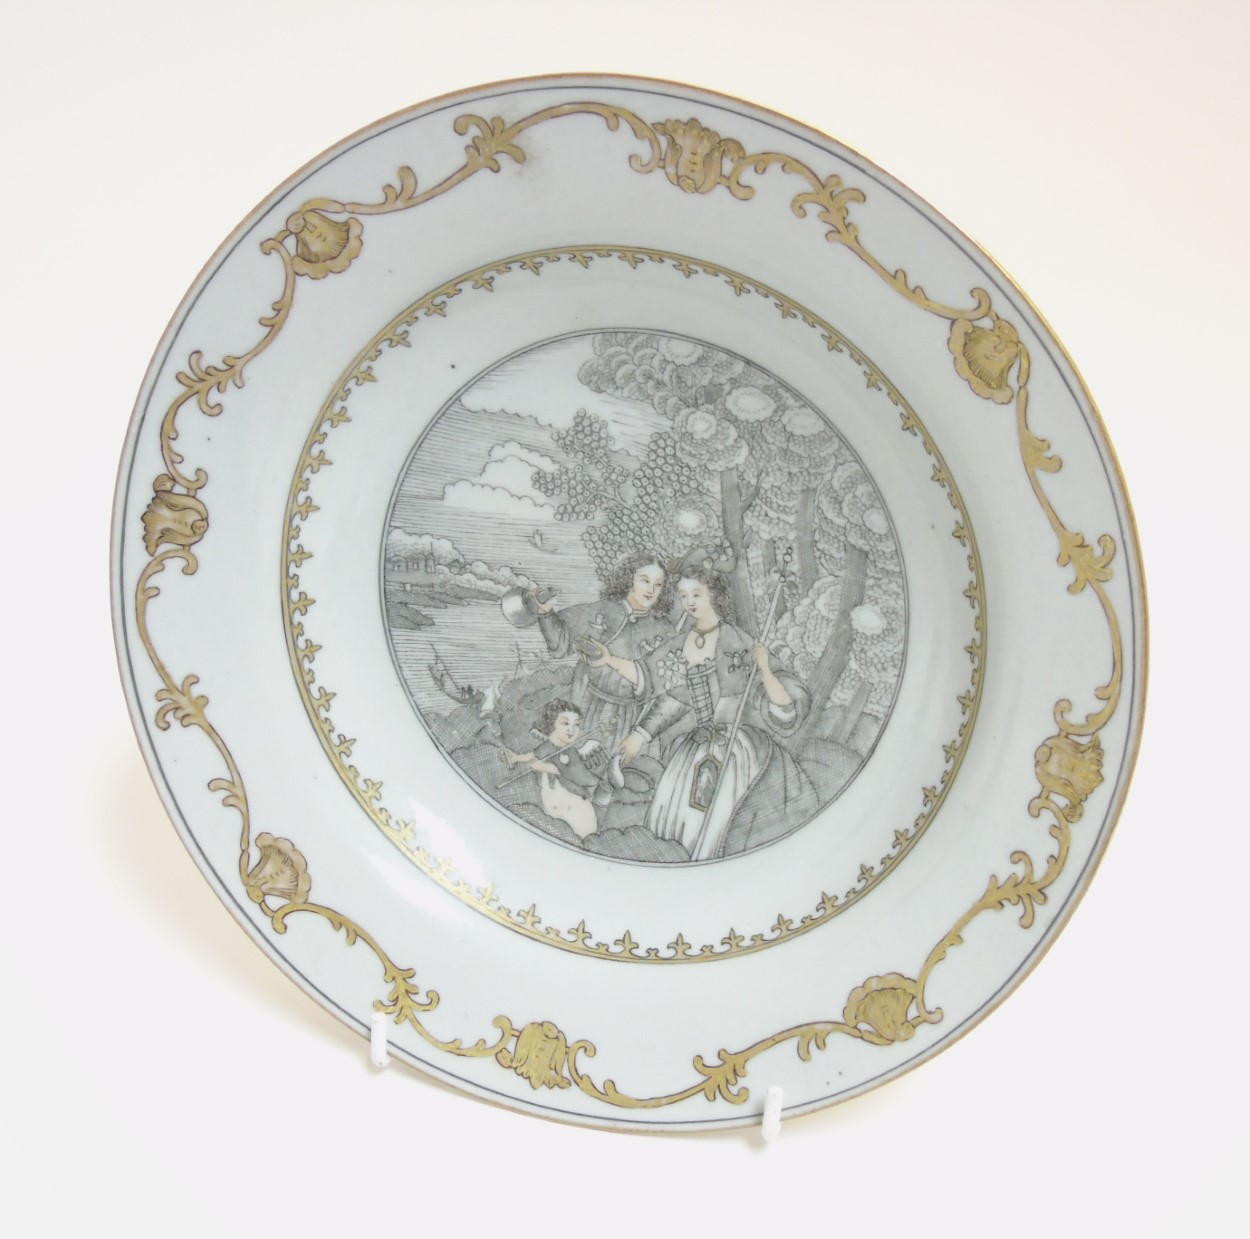 Lot 19 - A Chinese Export grisaille plate, hand painted in grisaille and gilt,